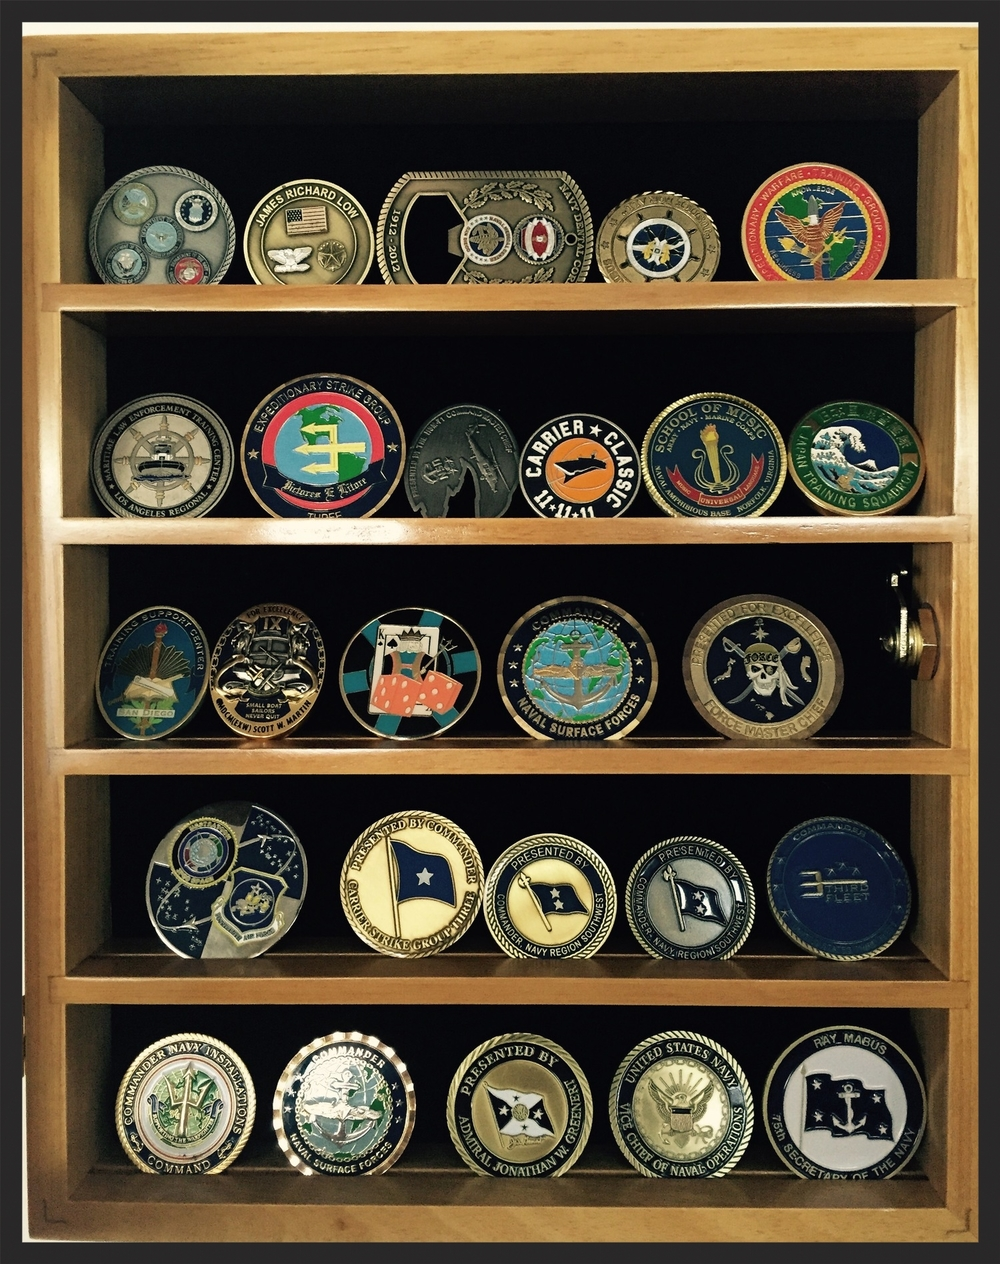 26 challenge coins, proudly displayed at my home in San Diego, CA.